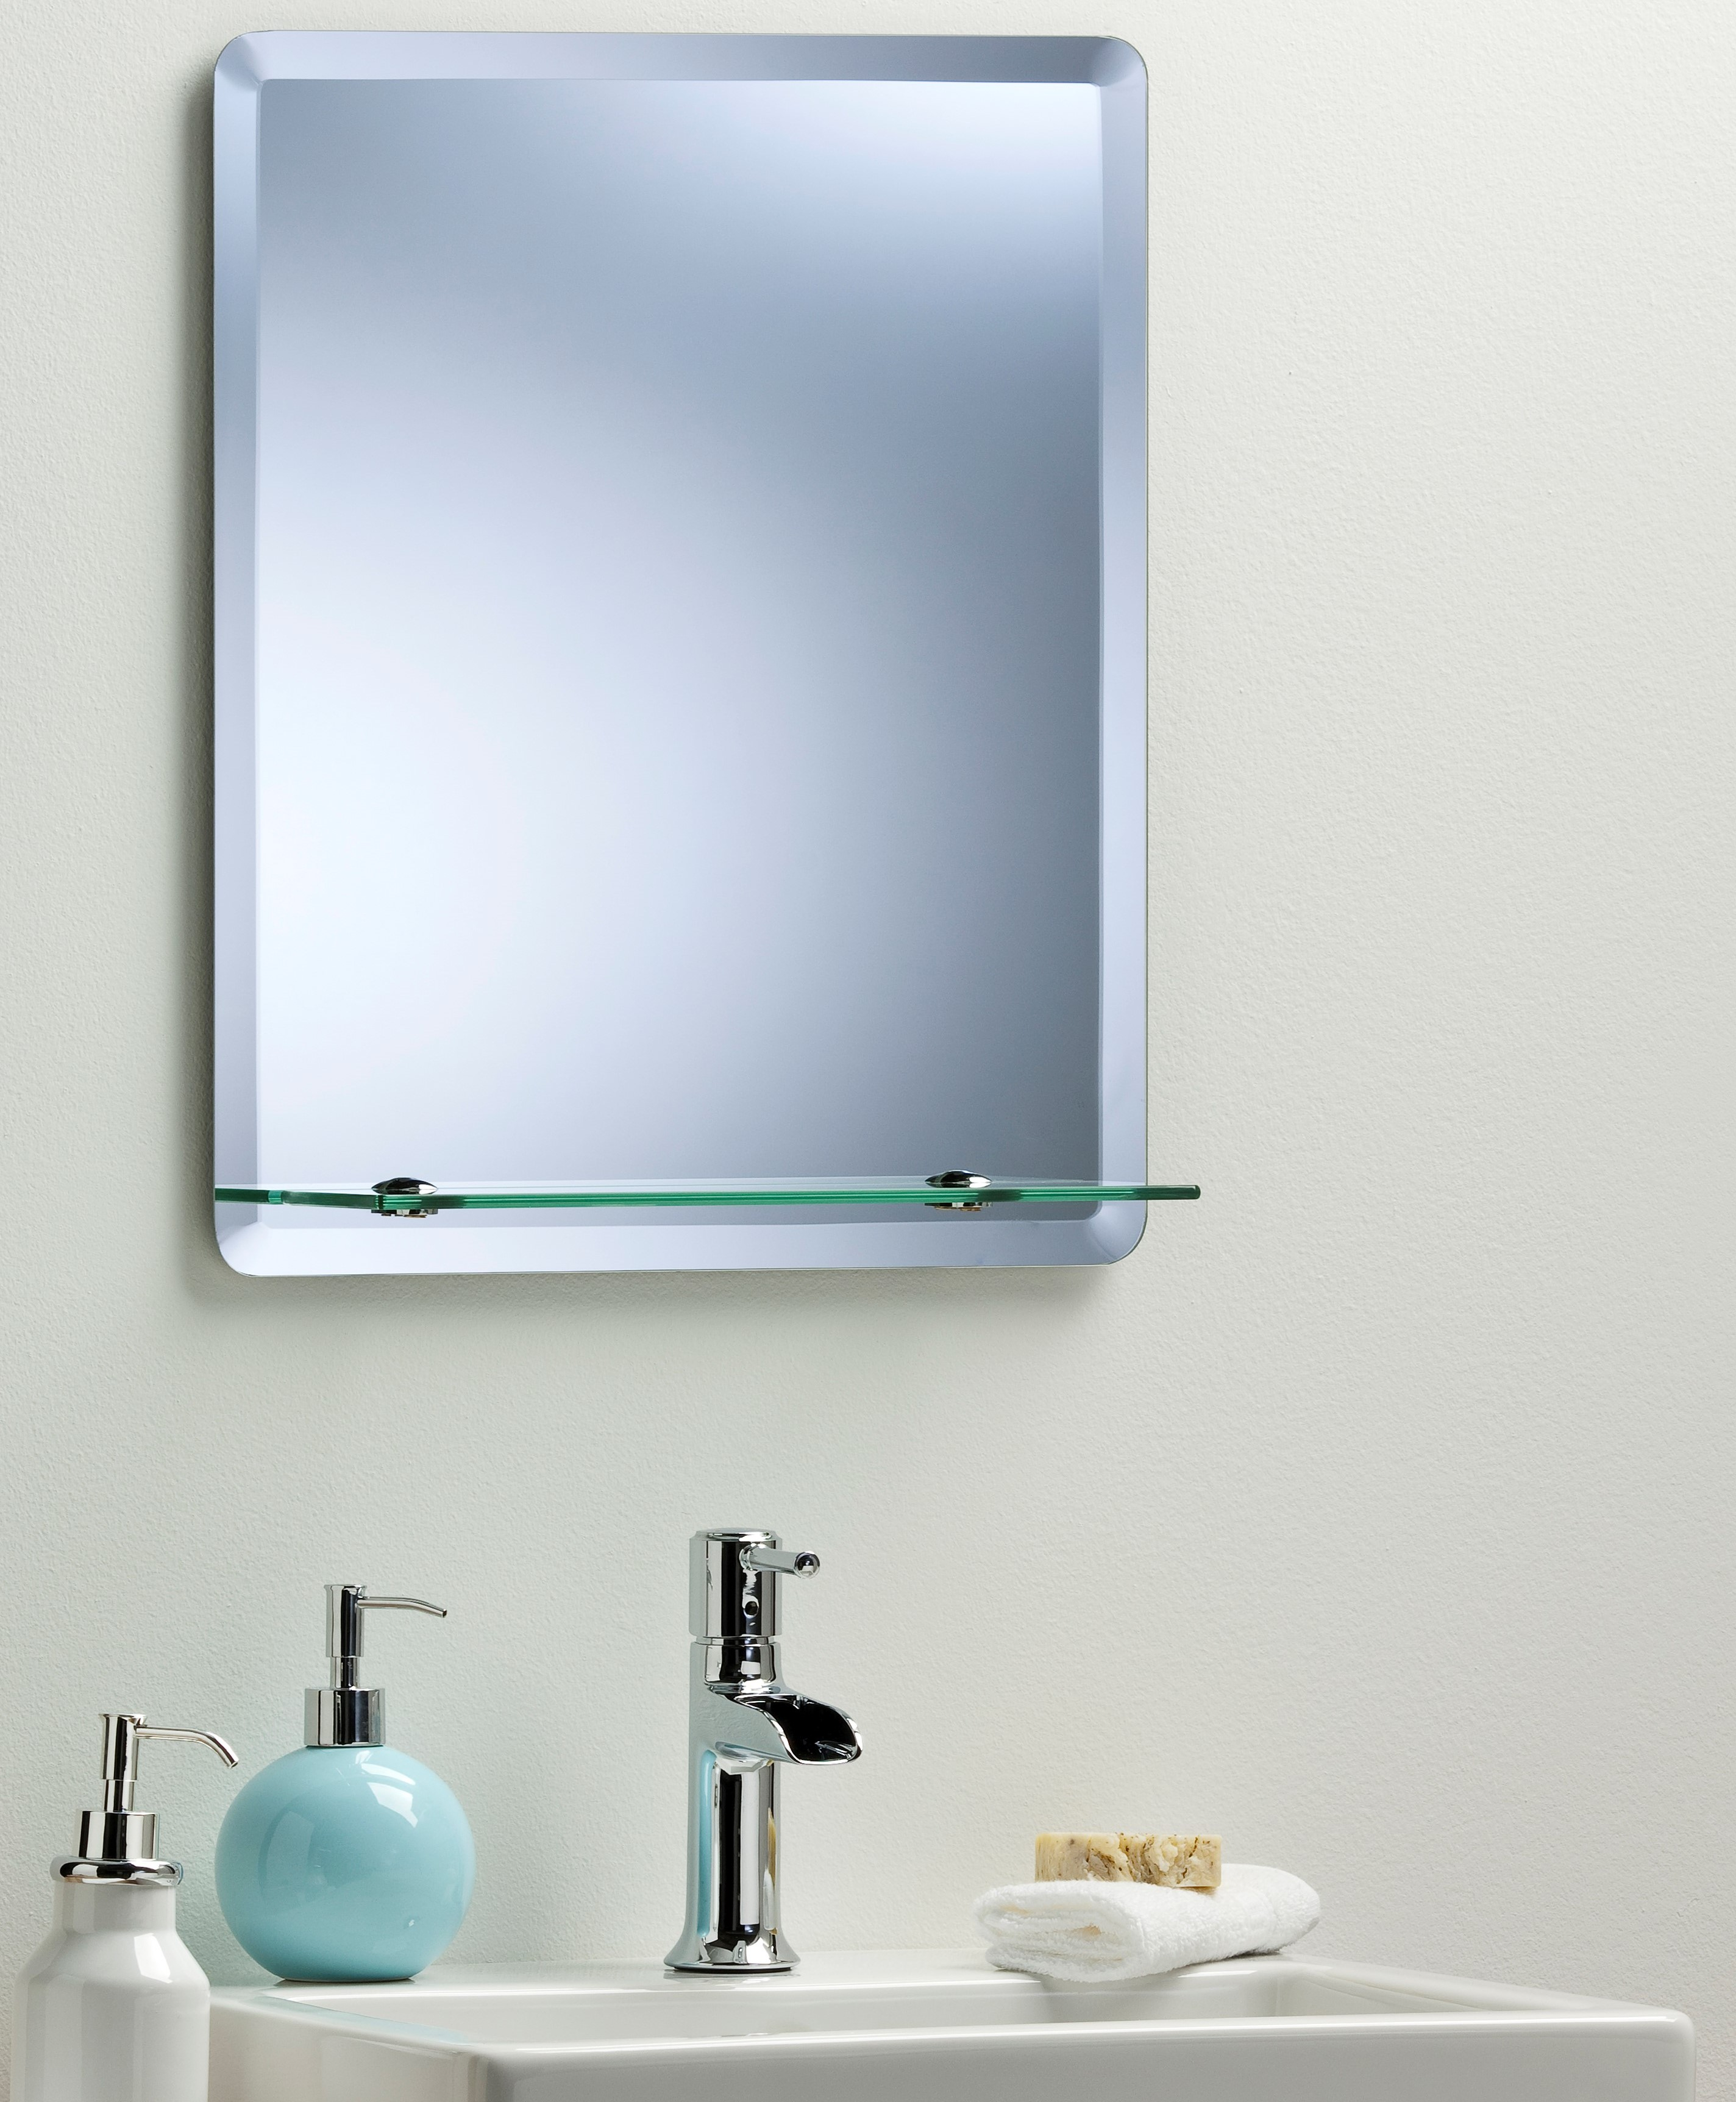 Bathroom mirror modern stylish rectangular with shelf frameless plain wall mount ebay Neue design bathroom mirror